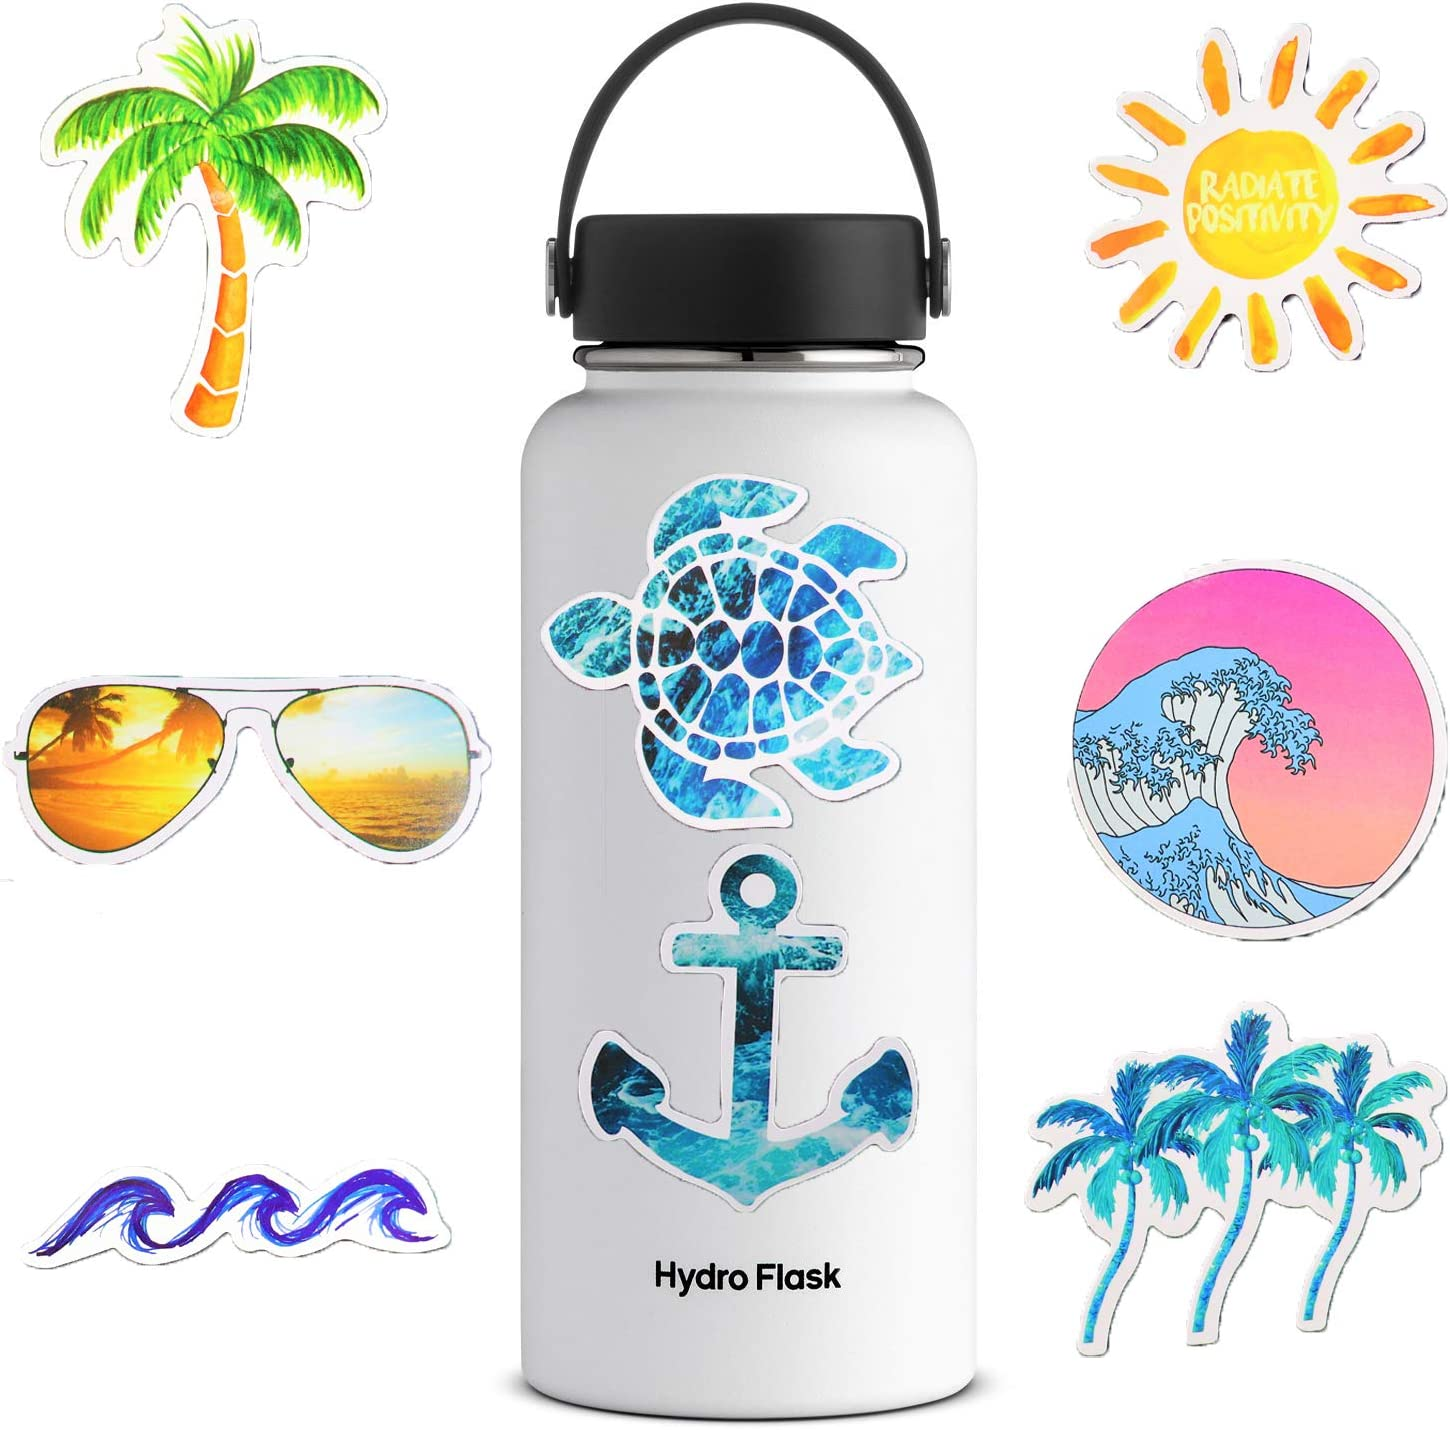 Cute Ocean/Beach Trendy Vinyl Stickers (50 PC) VSCO Pack for for Laptop, Hydro Flask, Water Bottles, Phone, Ipad, Luggage. Asthetic Decals for Teens, College Students. Extra Durable Vinyl, Waterproof